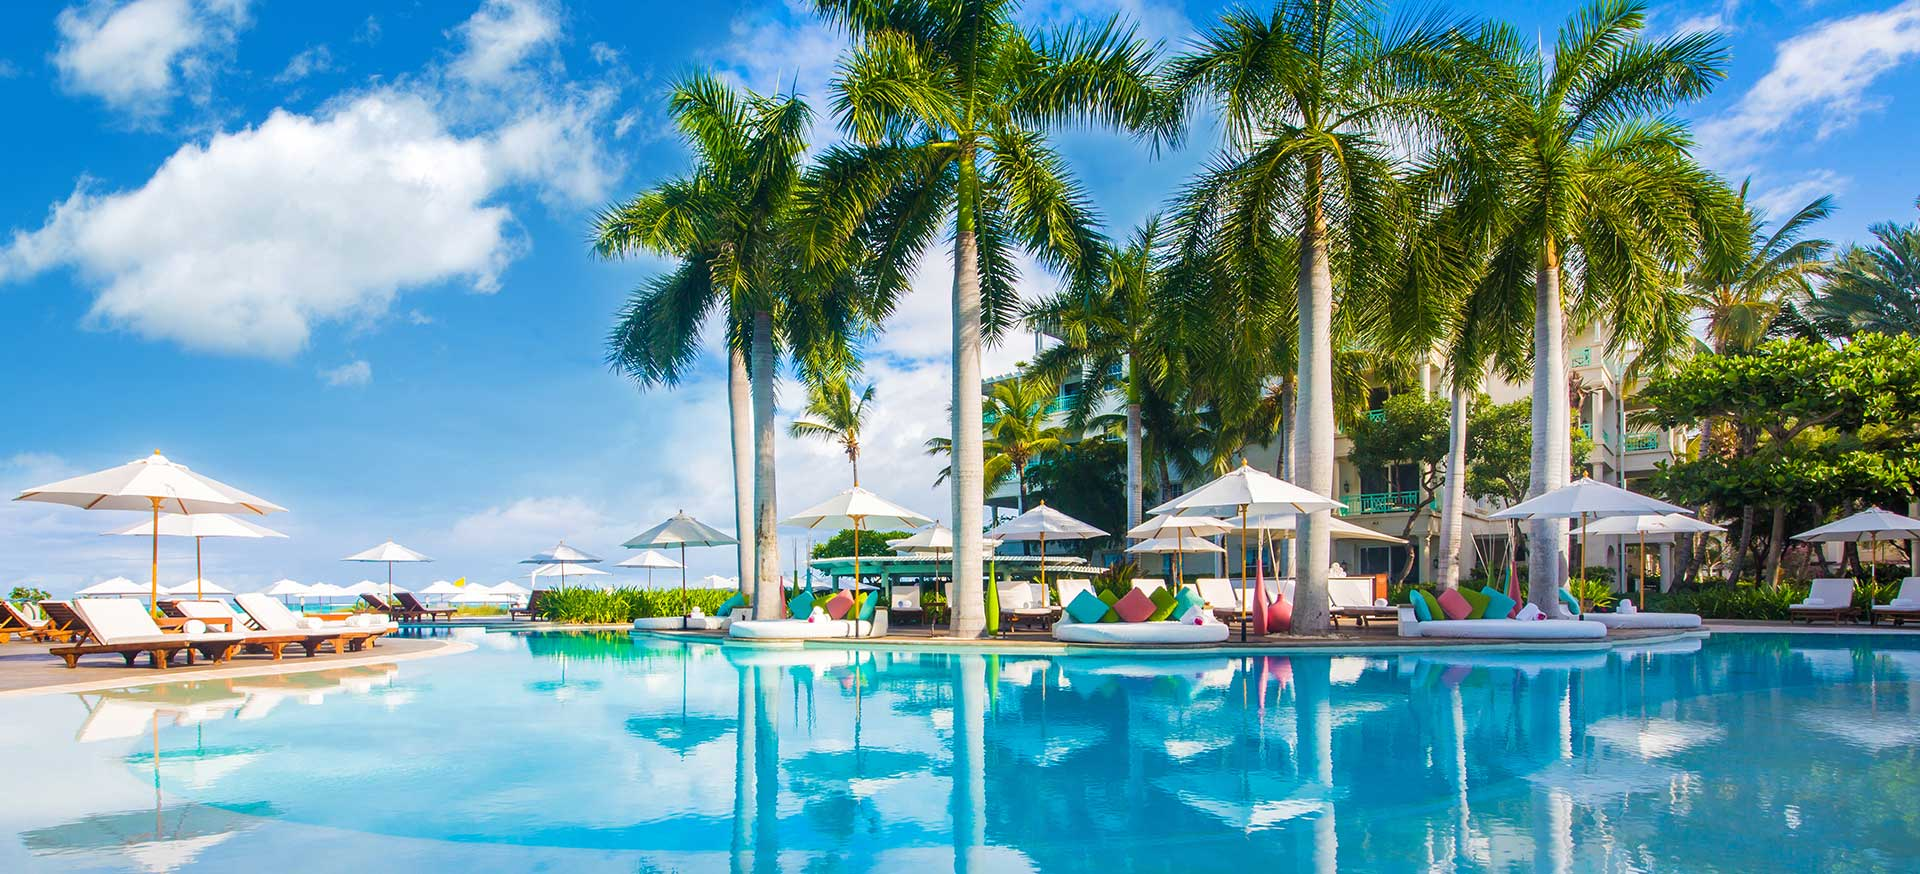 The beautiful pool at The Palms Turks and Caicos.